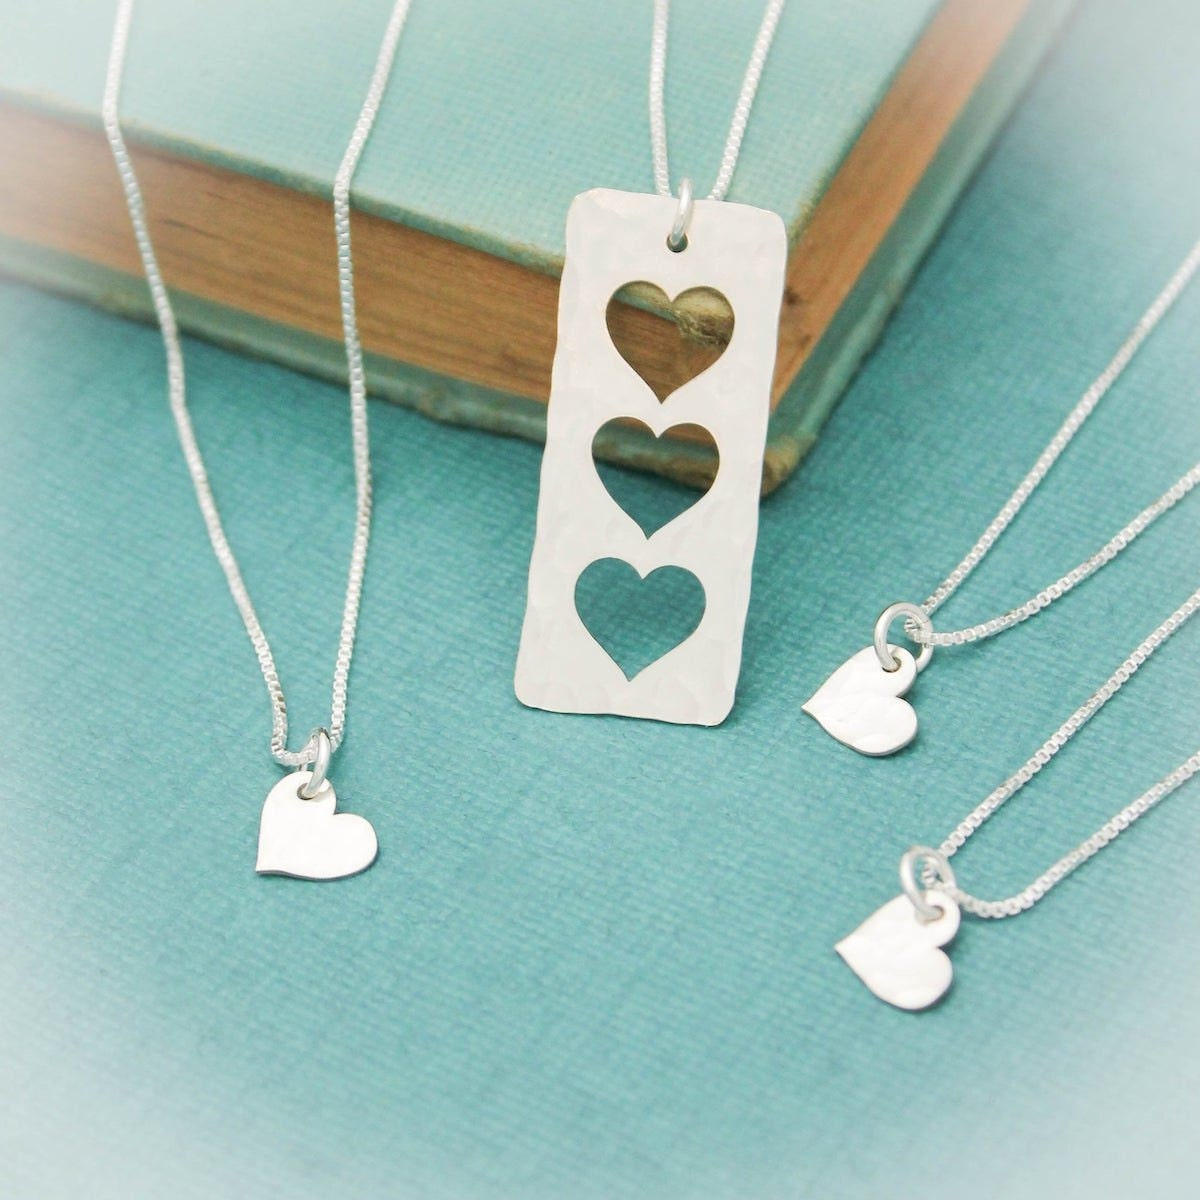 Silver cut-out heart necklace set from Tracy Tayan Designs